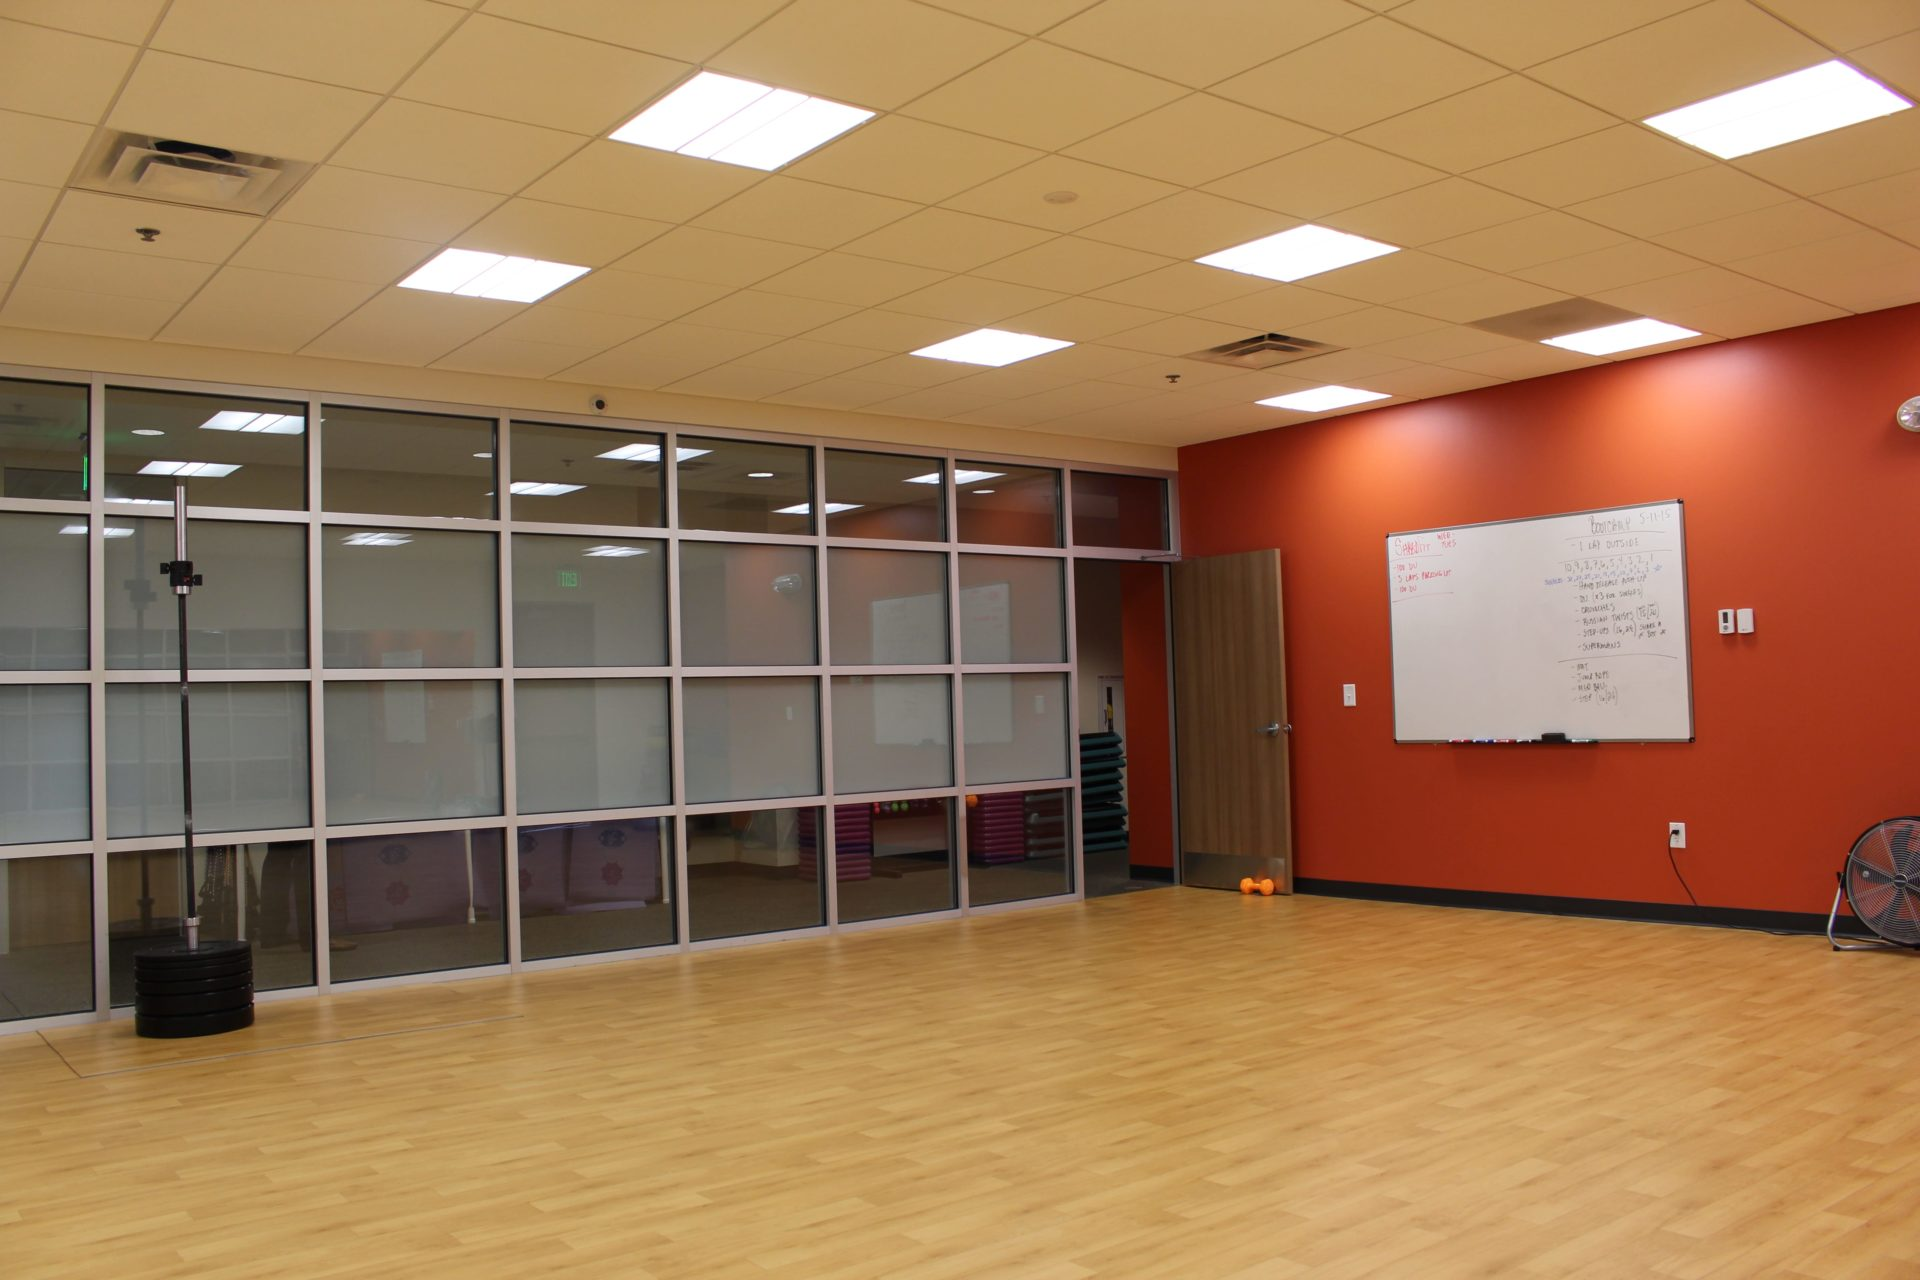 Chico S Fitness Center Dco Commercial Floors